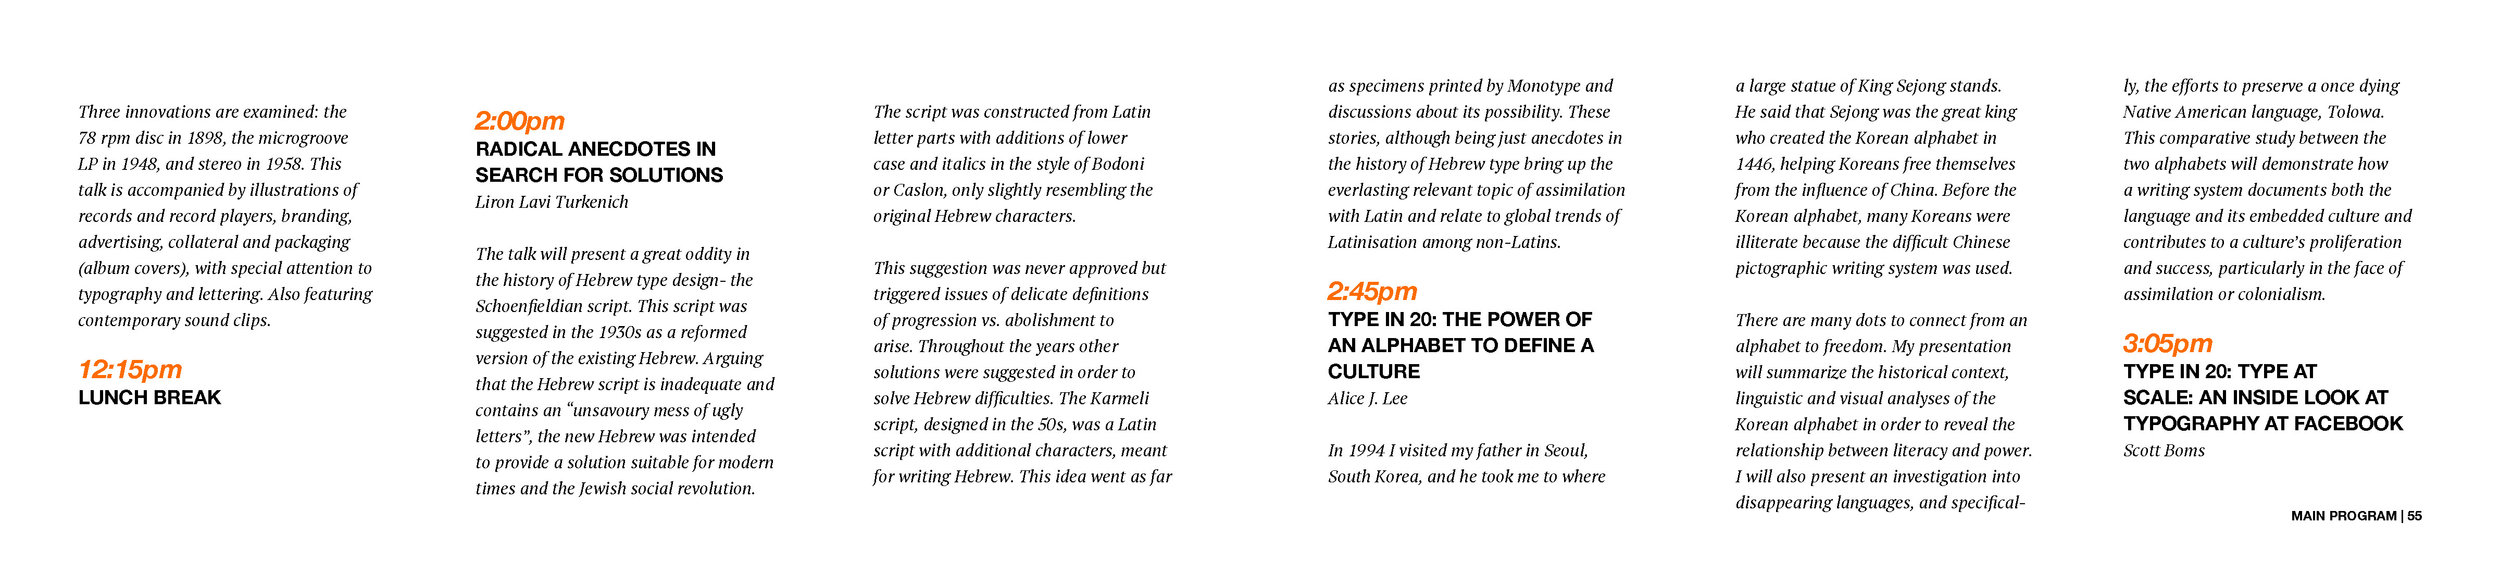 typecon_book_NEW_Page_28.jpg